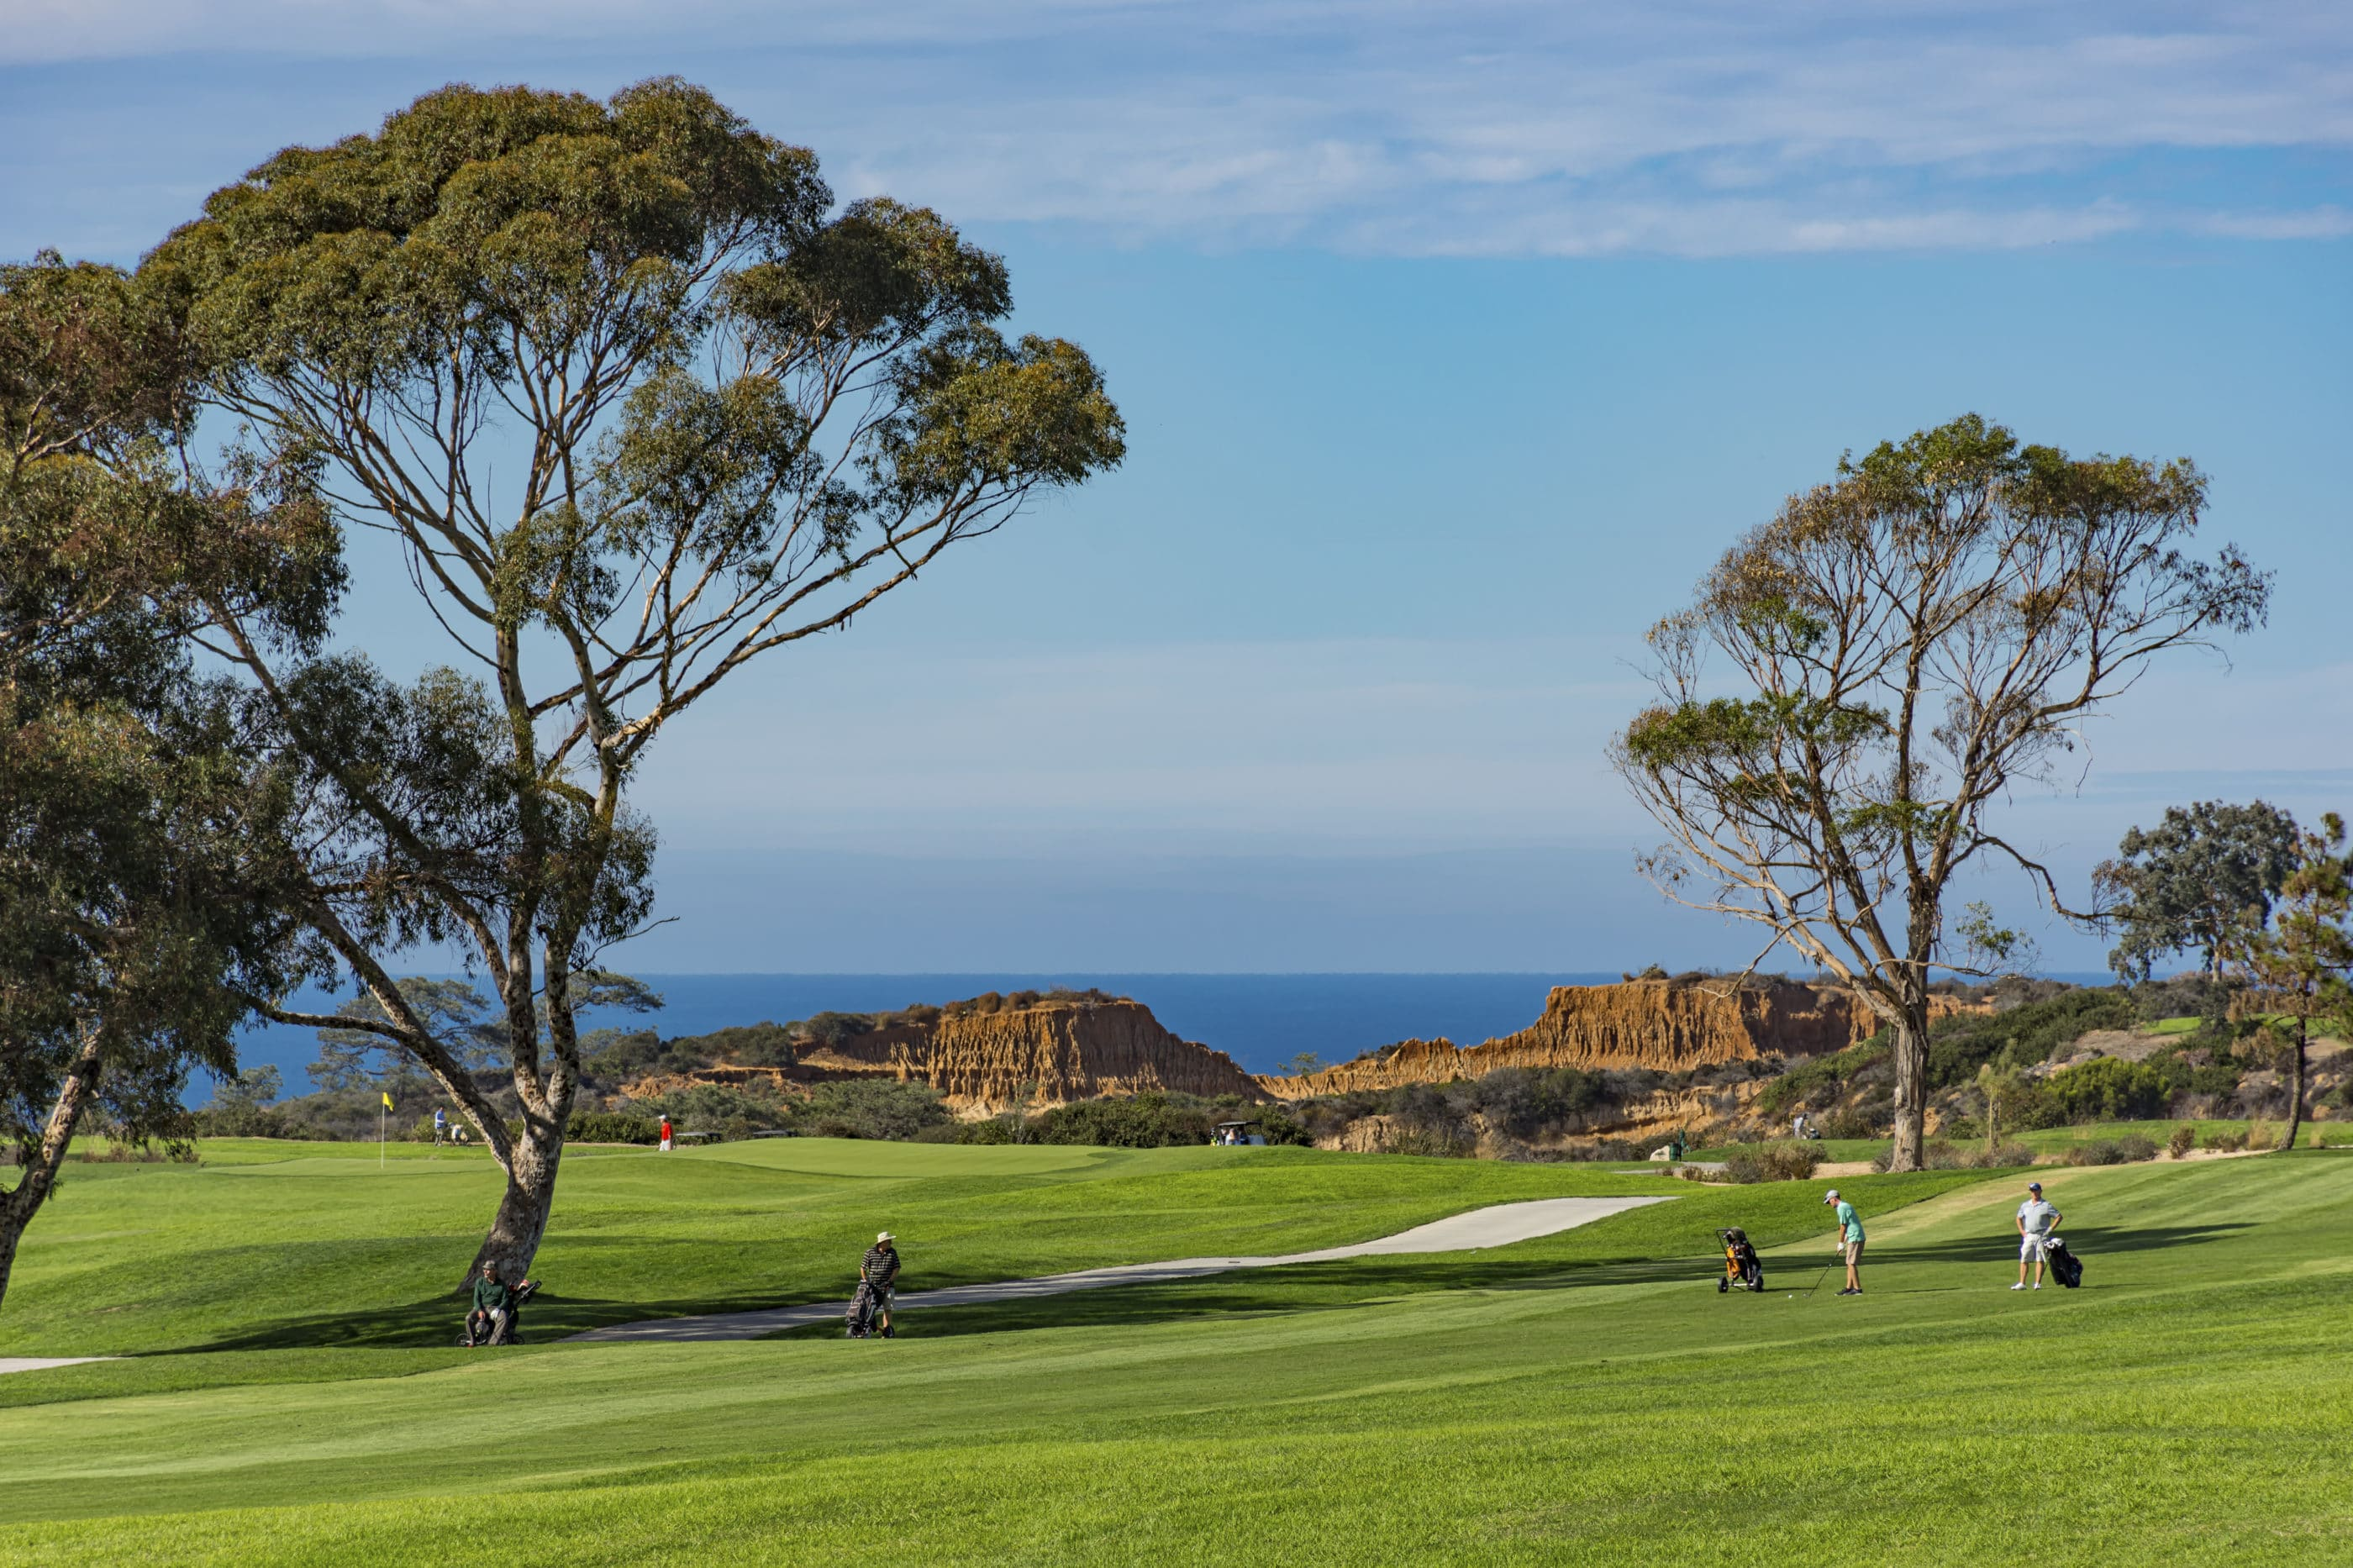 Golfers playing Torrey Pines Municipal Golf Course in La Jolla with the Pacific Ocean in the background.